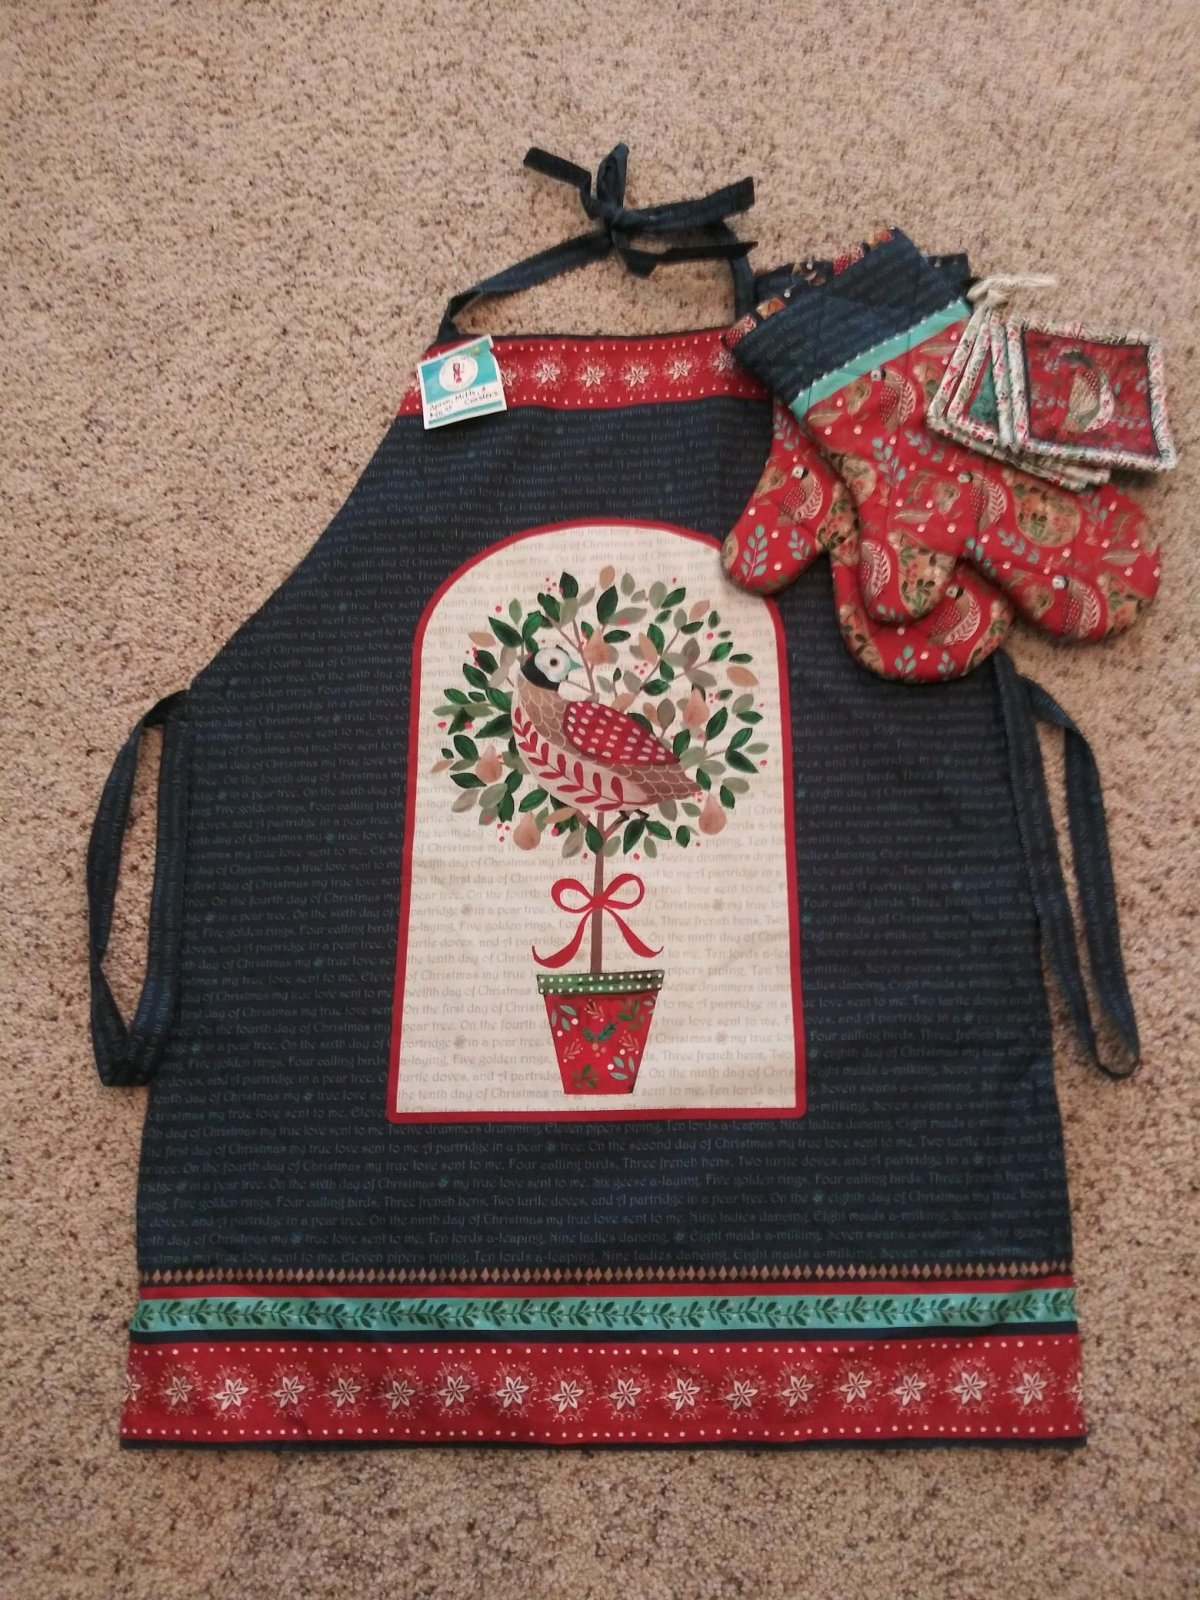 12 Days of Christmas - Apron and More